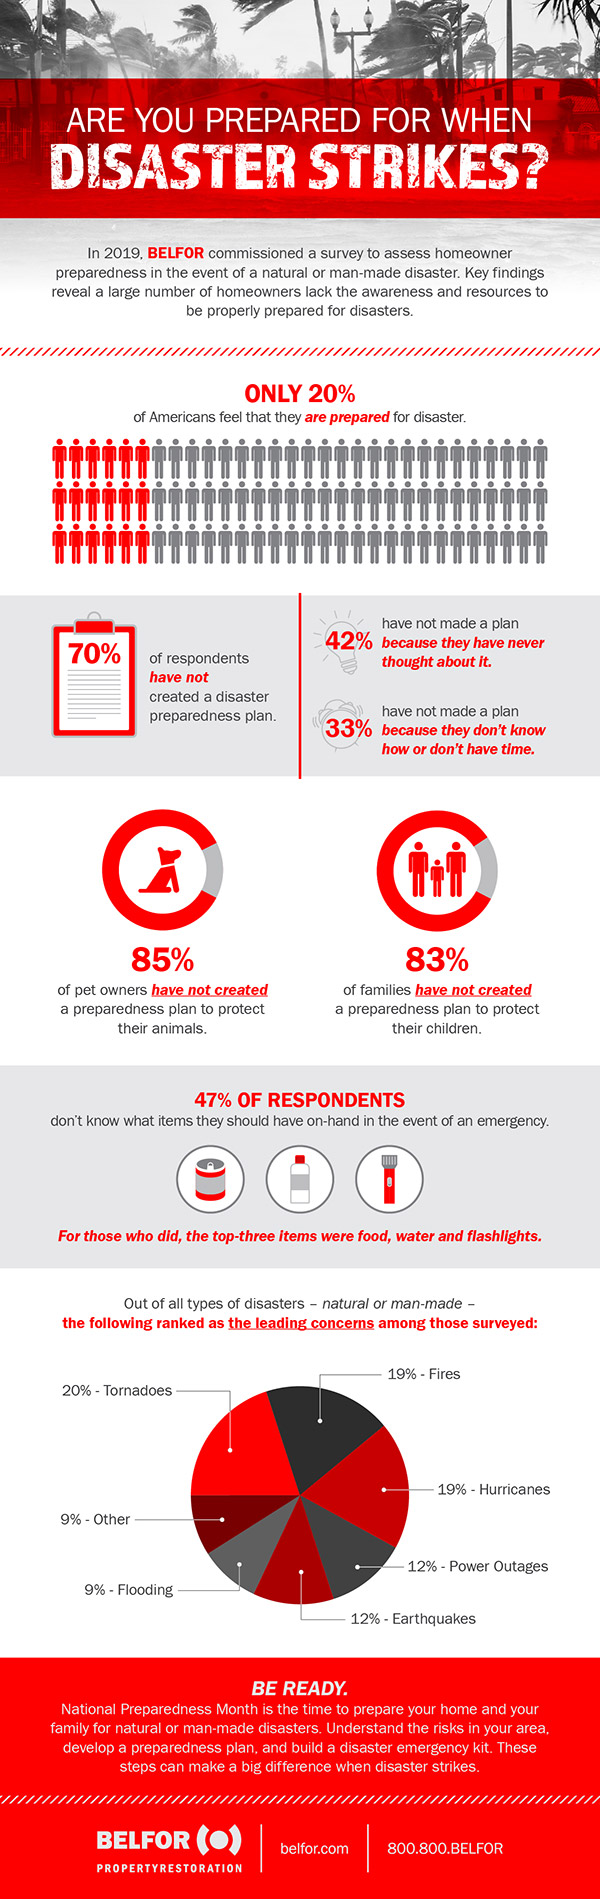 BELFOR Preparedness Month Survey Infographic 2019